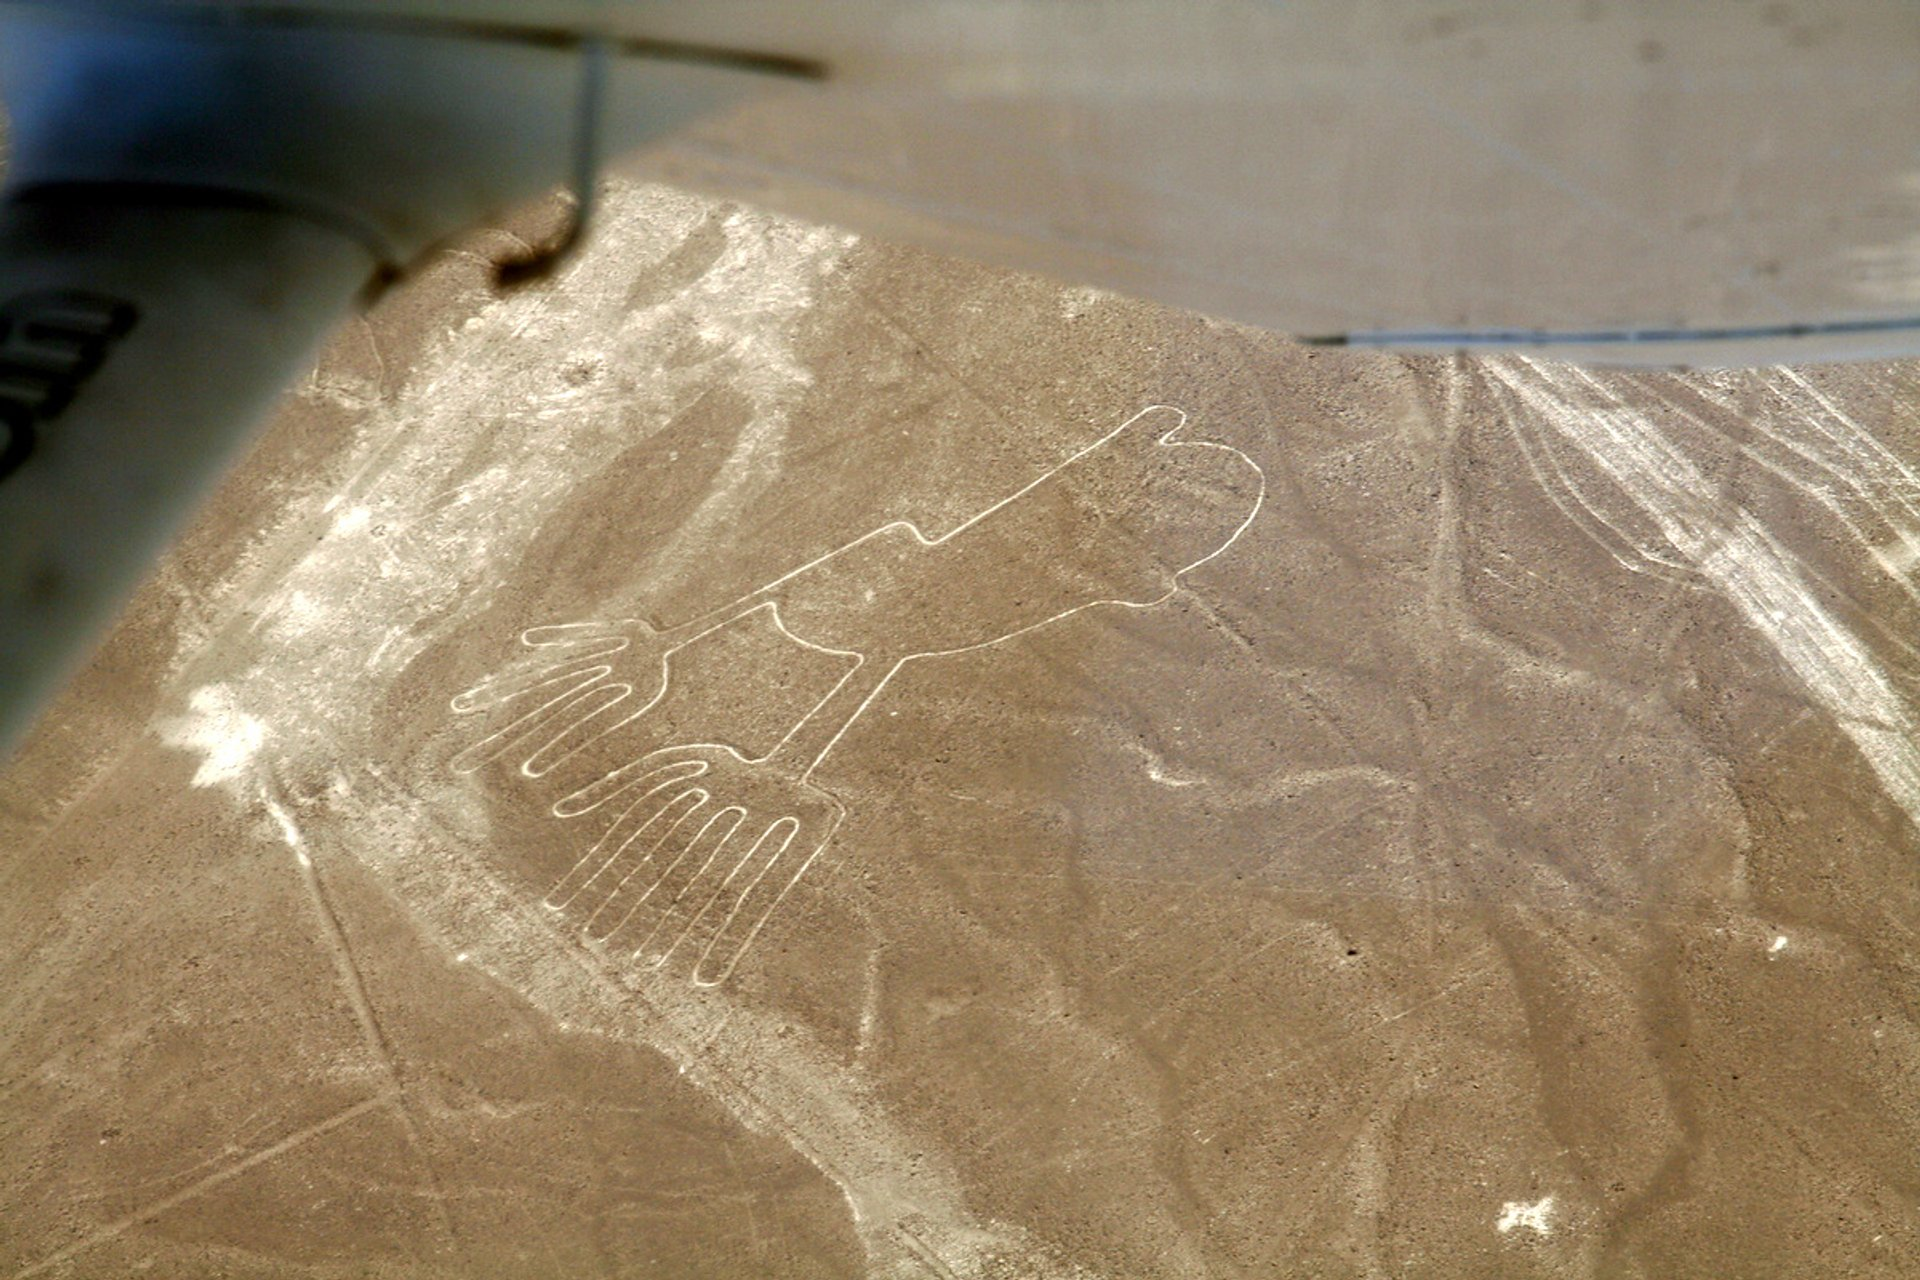 Flying over the Nazca Lines during the Dry Months in Peru 2020 - Best Time